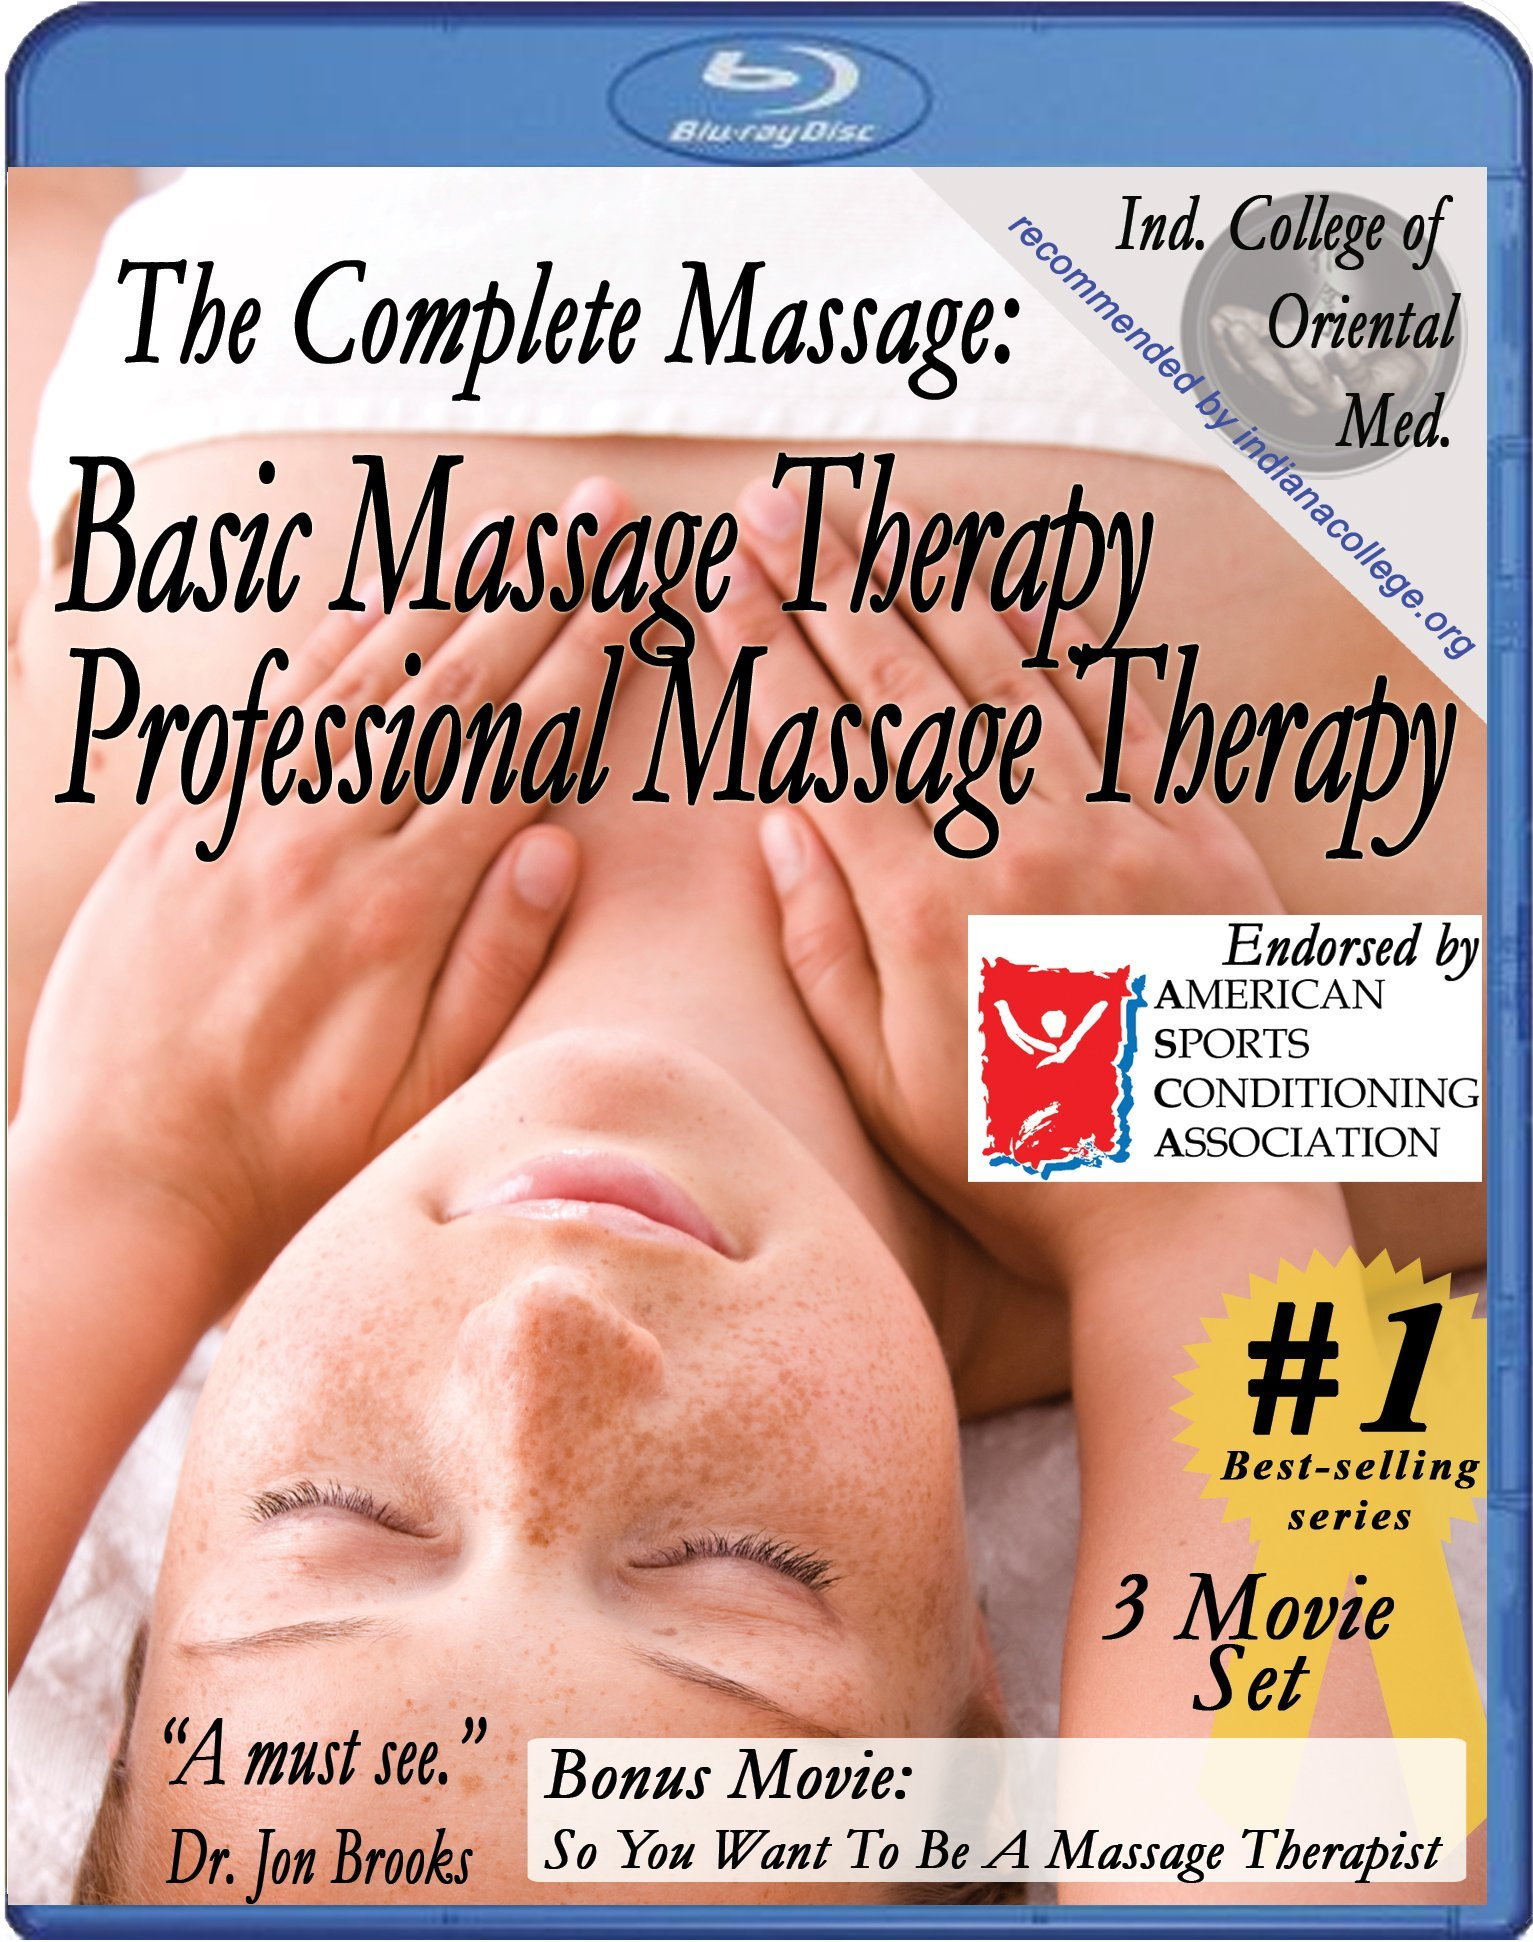 The Complete Massage Pack: Basic & Professional Massage Therapy plus free bonus movie So, You Want To Be A Massage Therapist (3 movie combo pack) [Blu-ray]